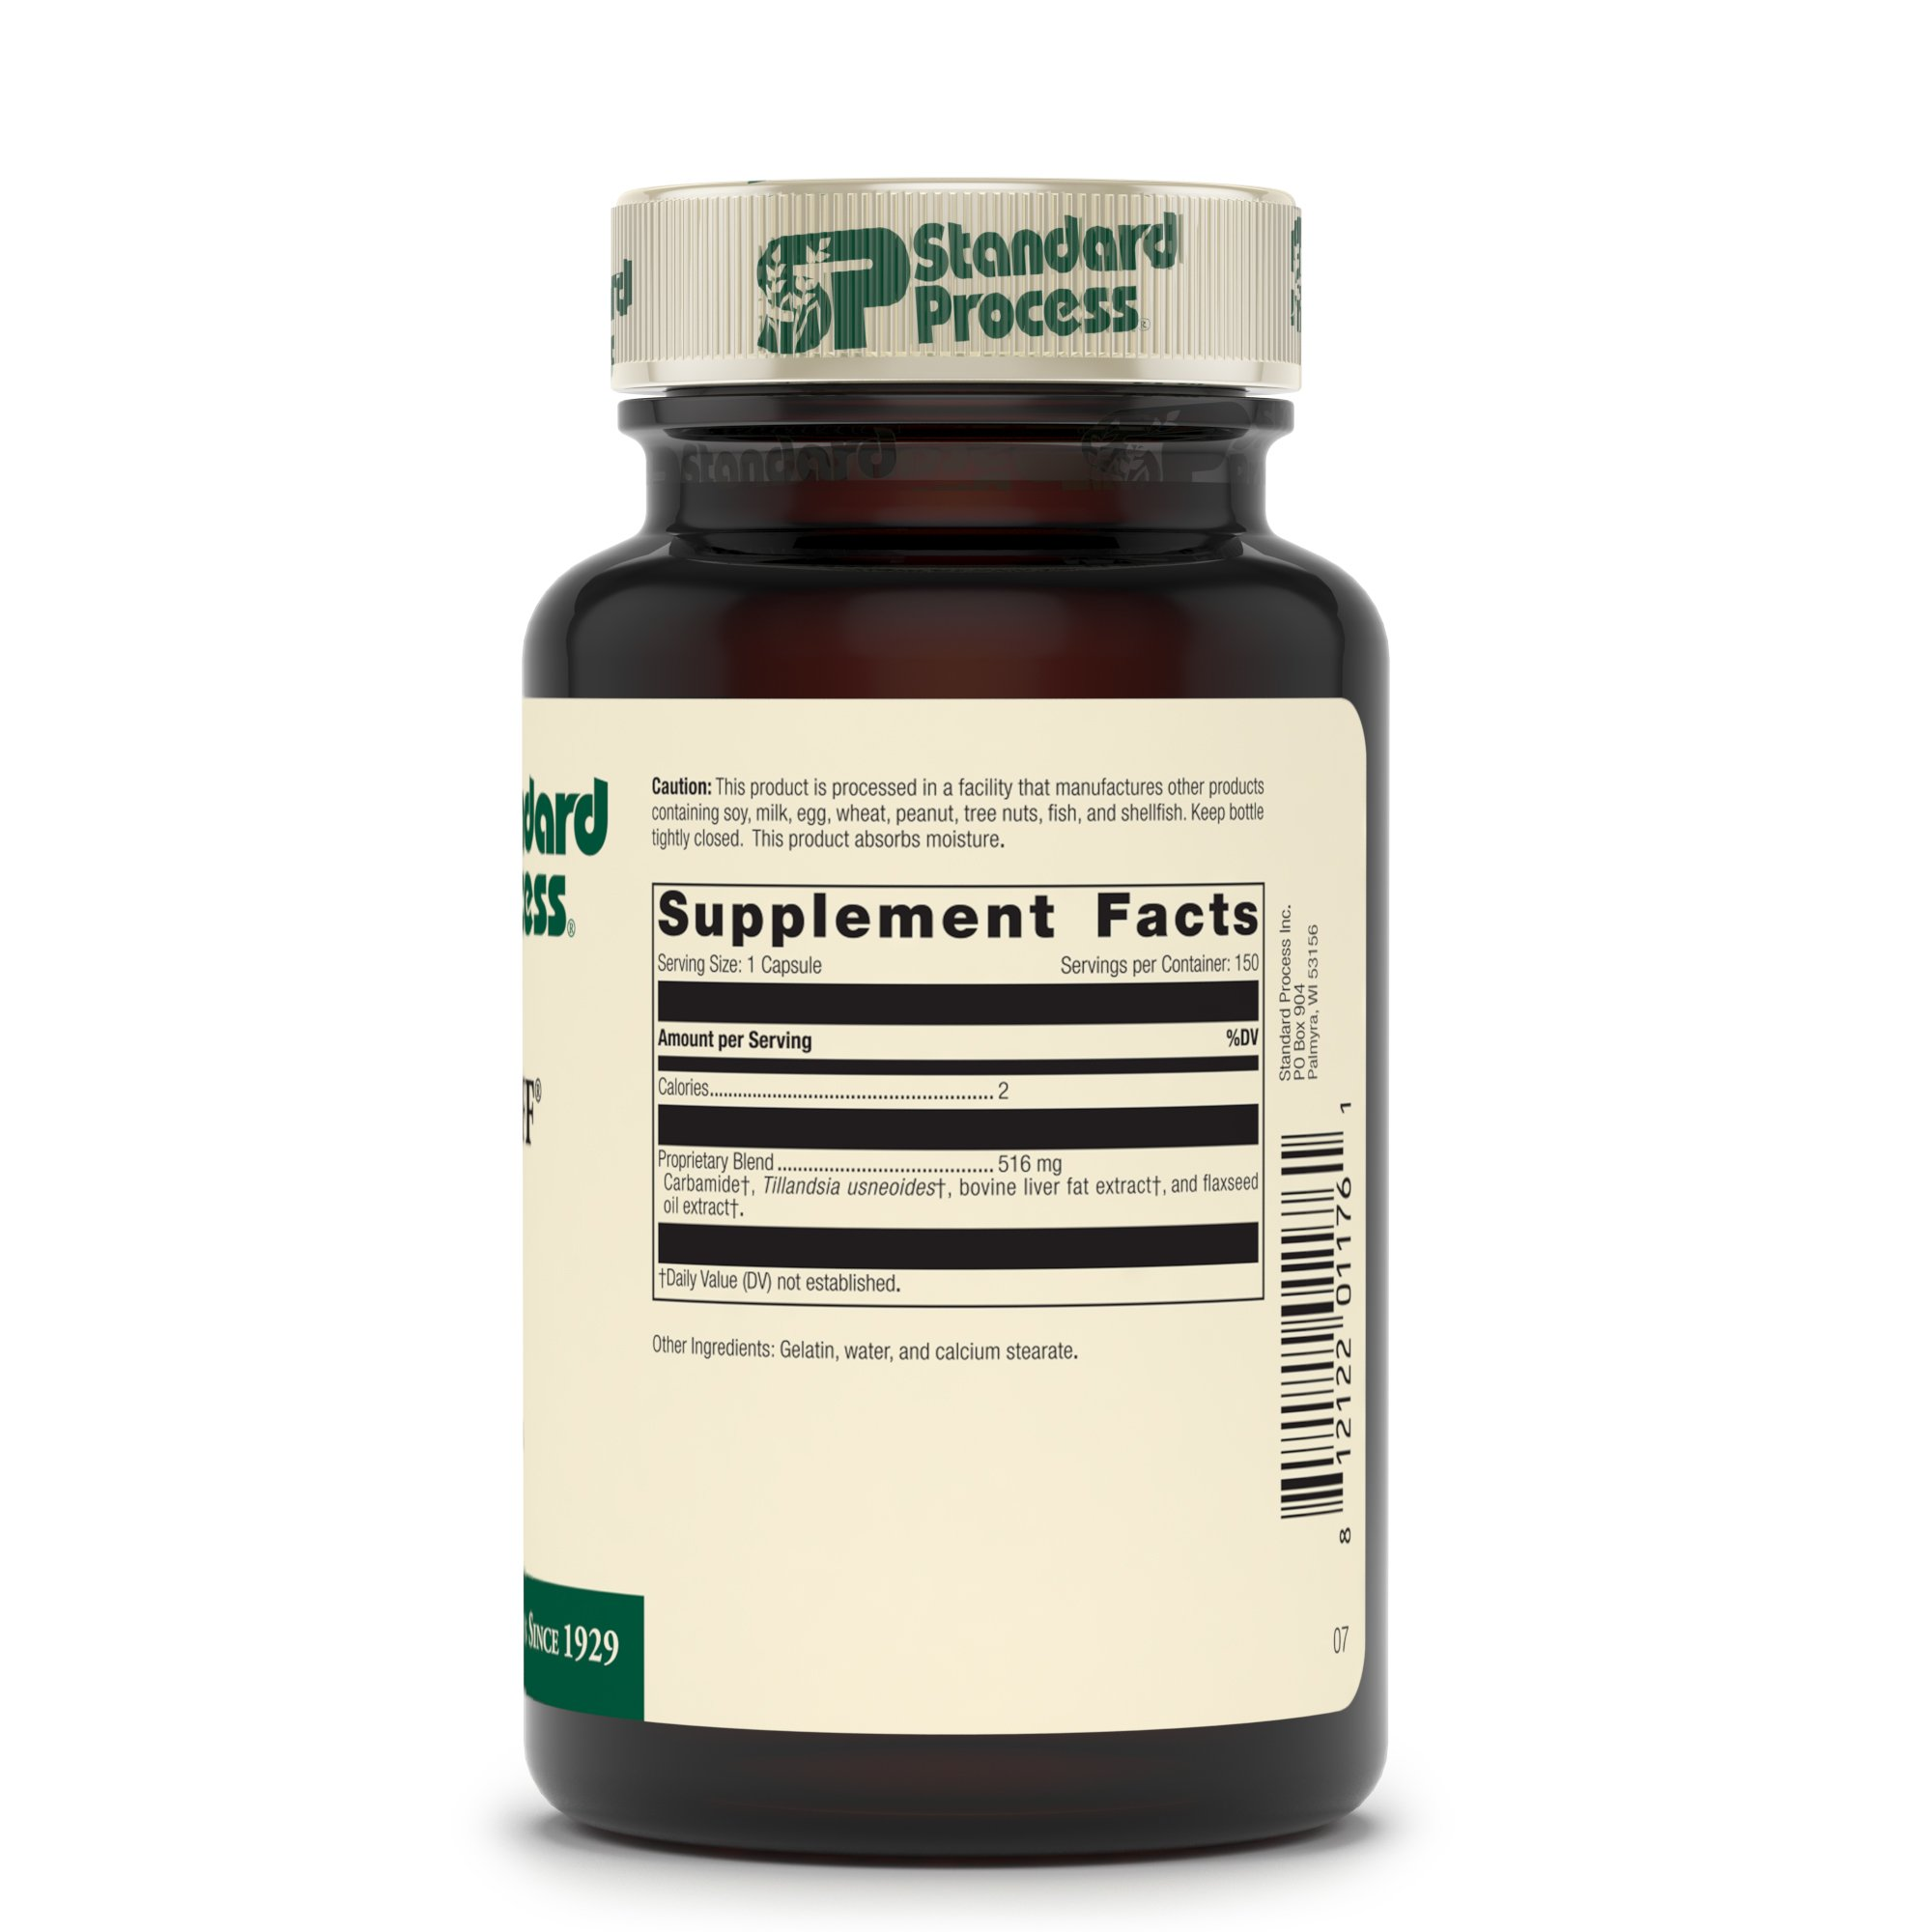 Standard Process - Super-Eff - Supports Nervous System, Cellular Health, Energy Production - 150 Capsules by Standard Process (Image #3)